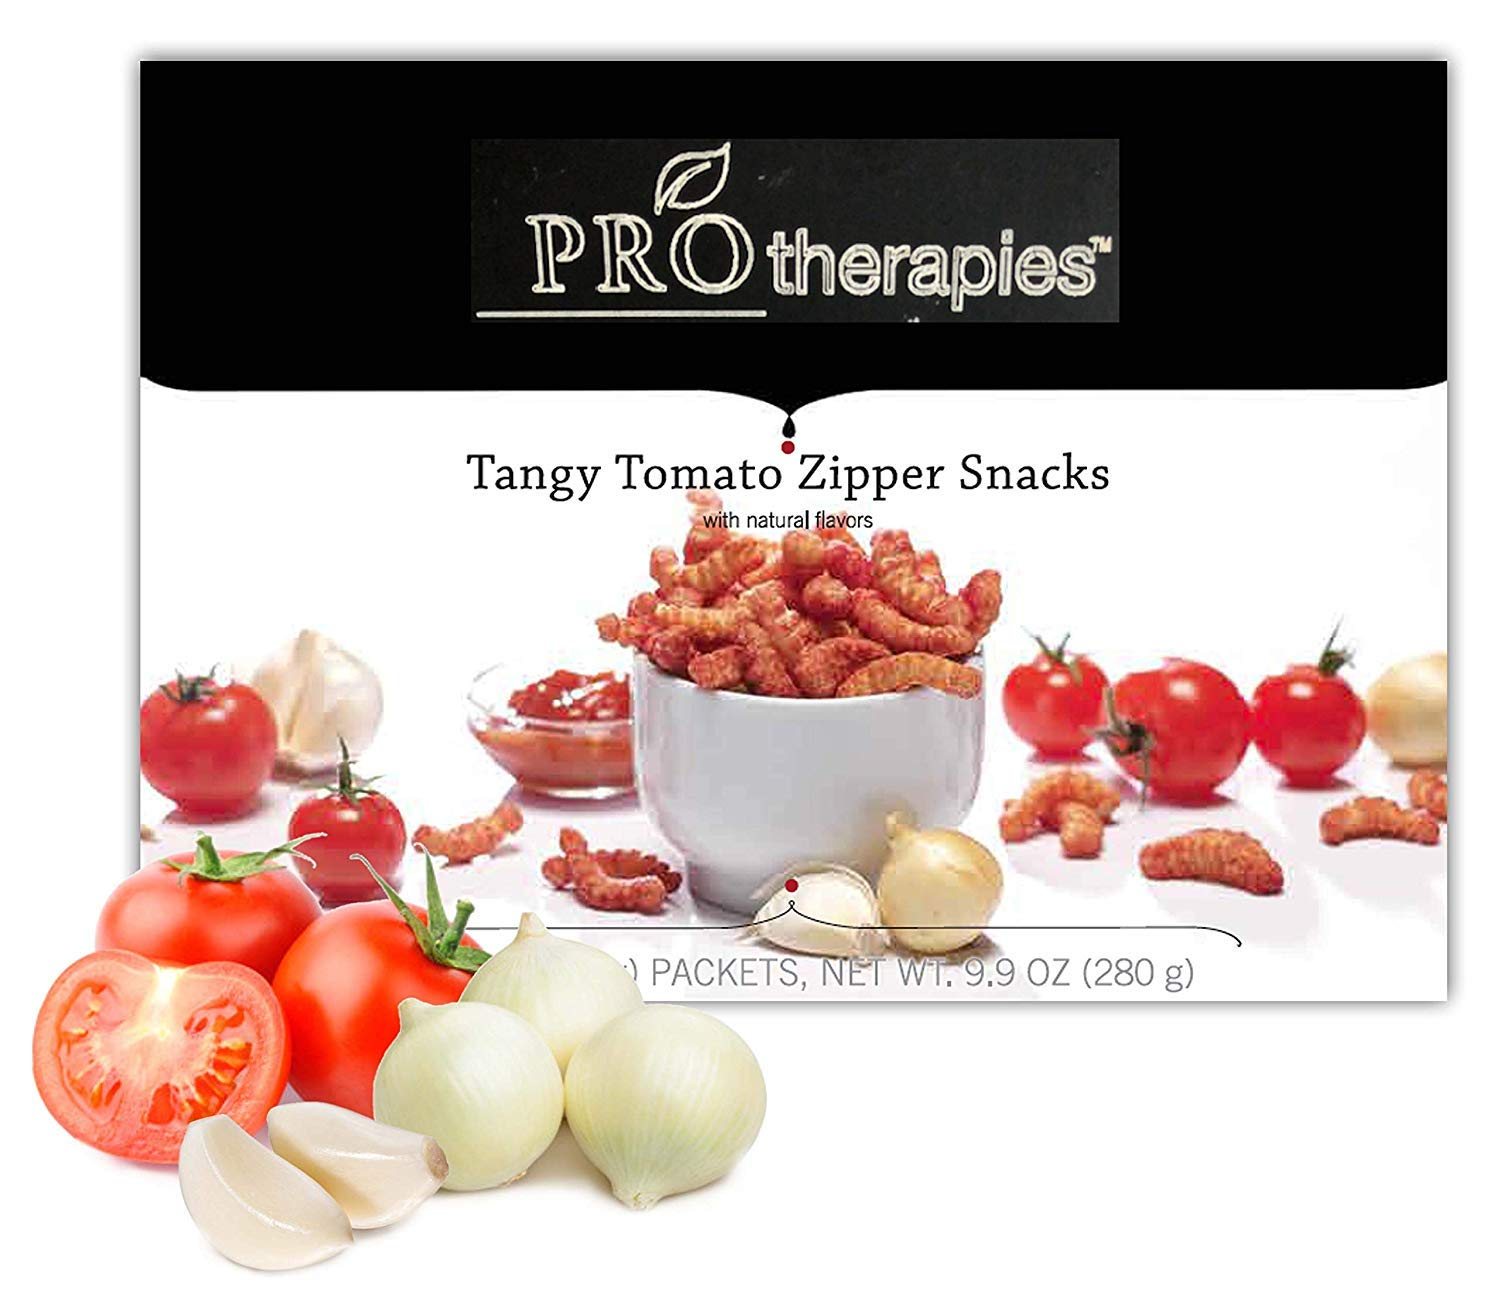 High Protein Chips - Keto Friendly Protein Tangy Tomato Zippers (15g Protein) 7 Servings/Pack by PROTherapies